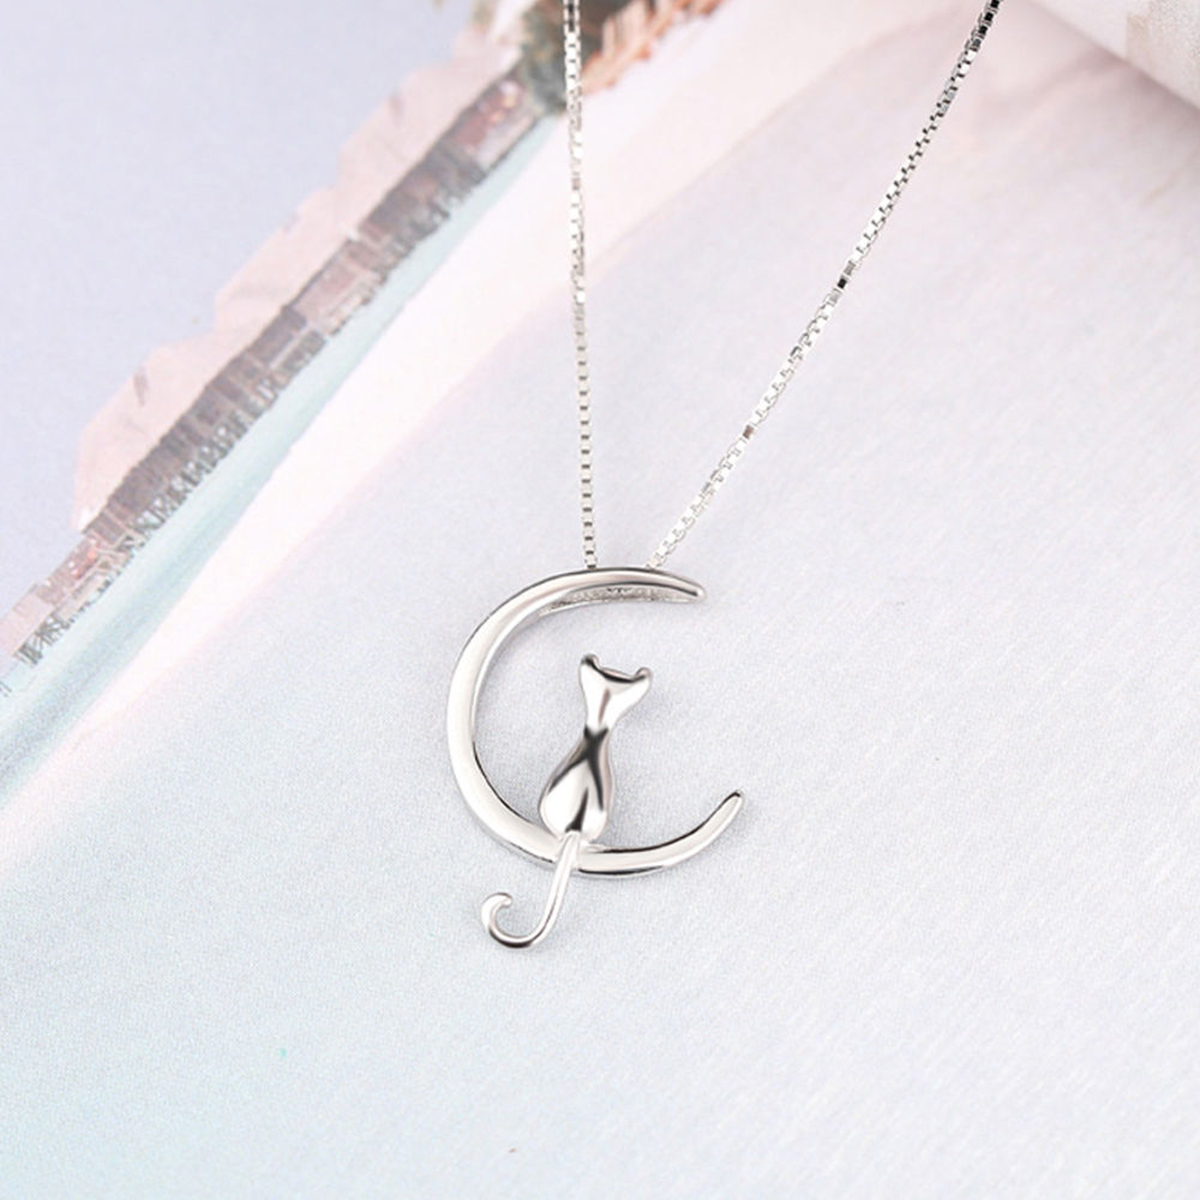 Pendant,Necklace For Women,Cat Moon Fashion Necklace,Necklace,jewelry,